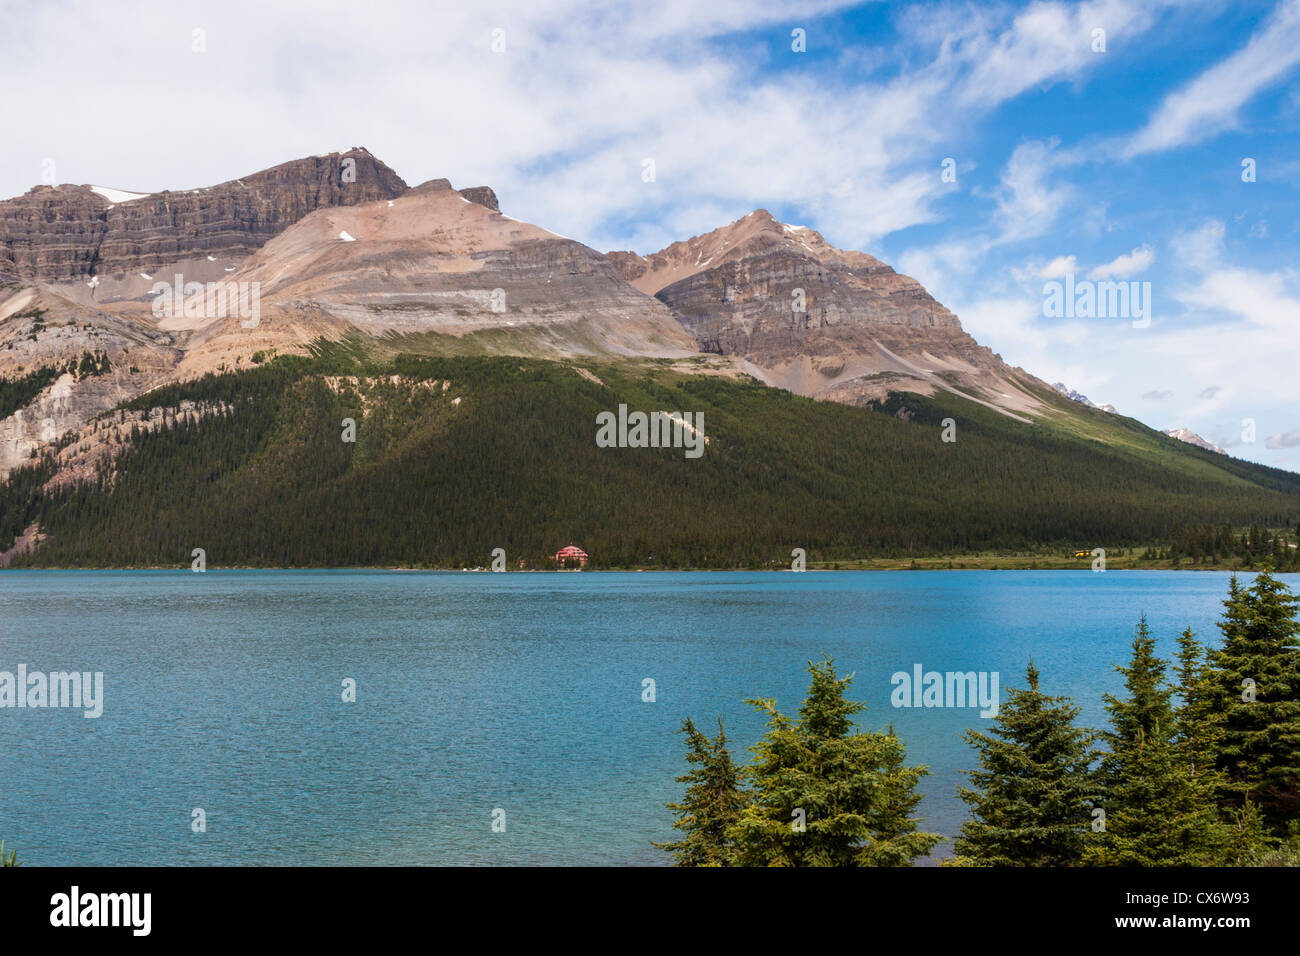 Num-Ti-Jah Lodge on Bow Lake in Banff National Park - Stock Image